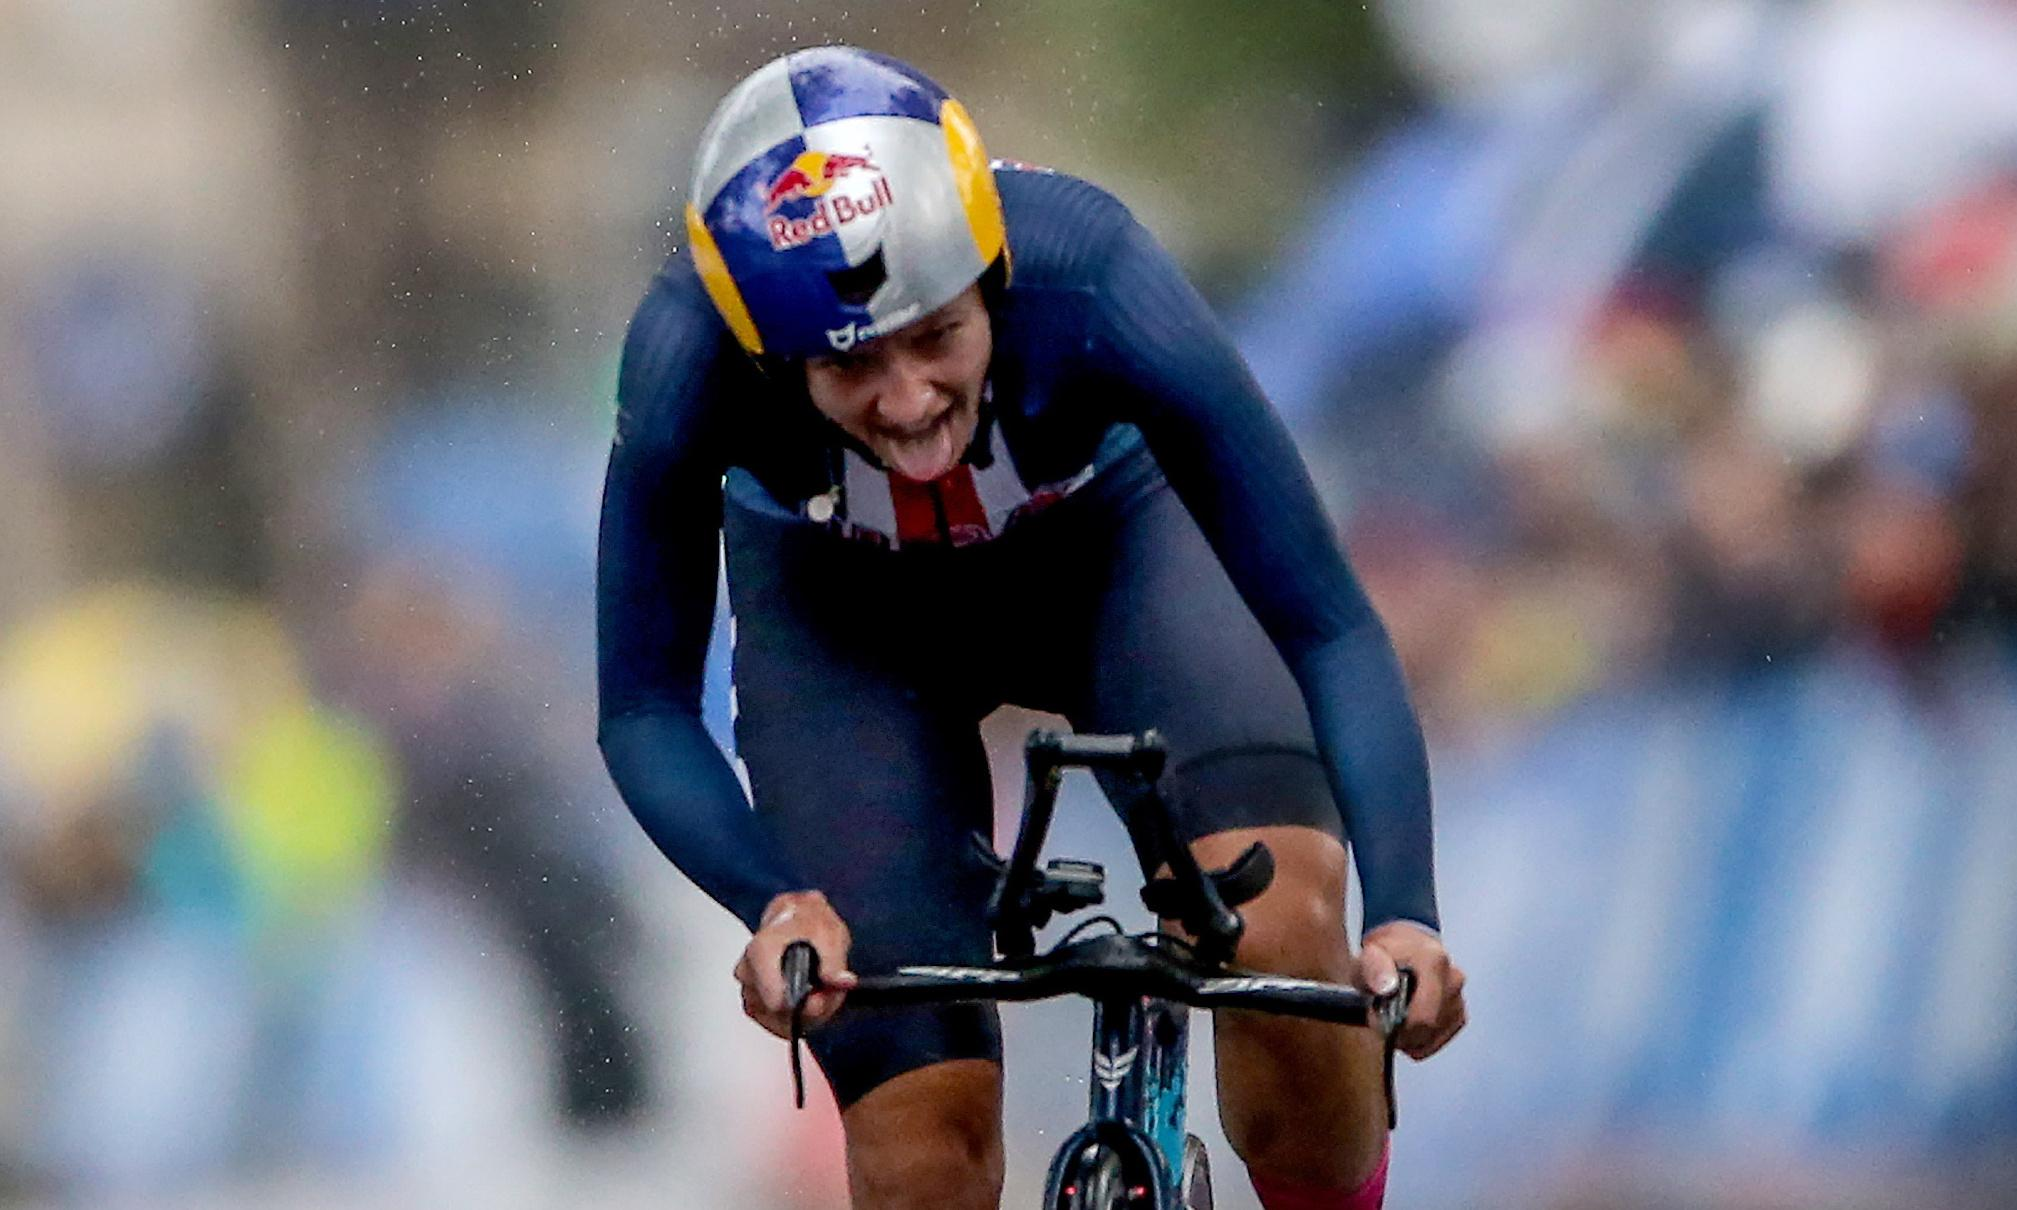 Dygert wins women's time trial amid Road World Championships rain chaos